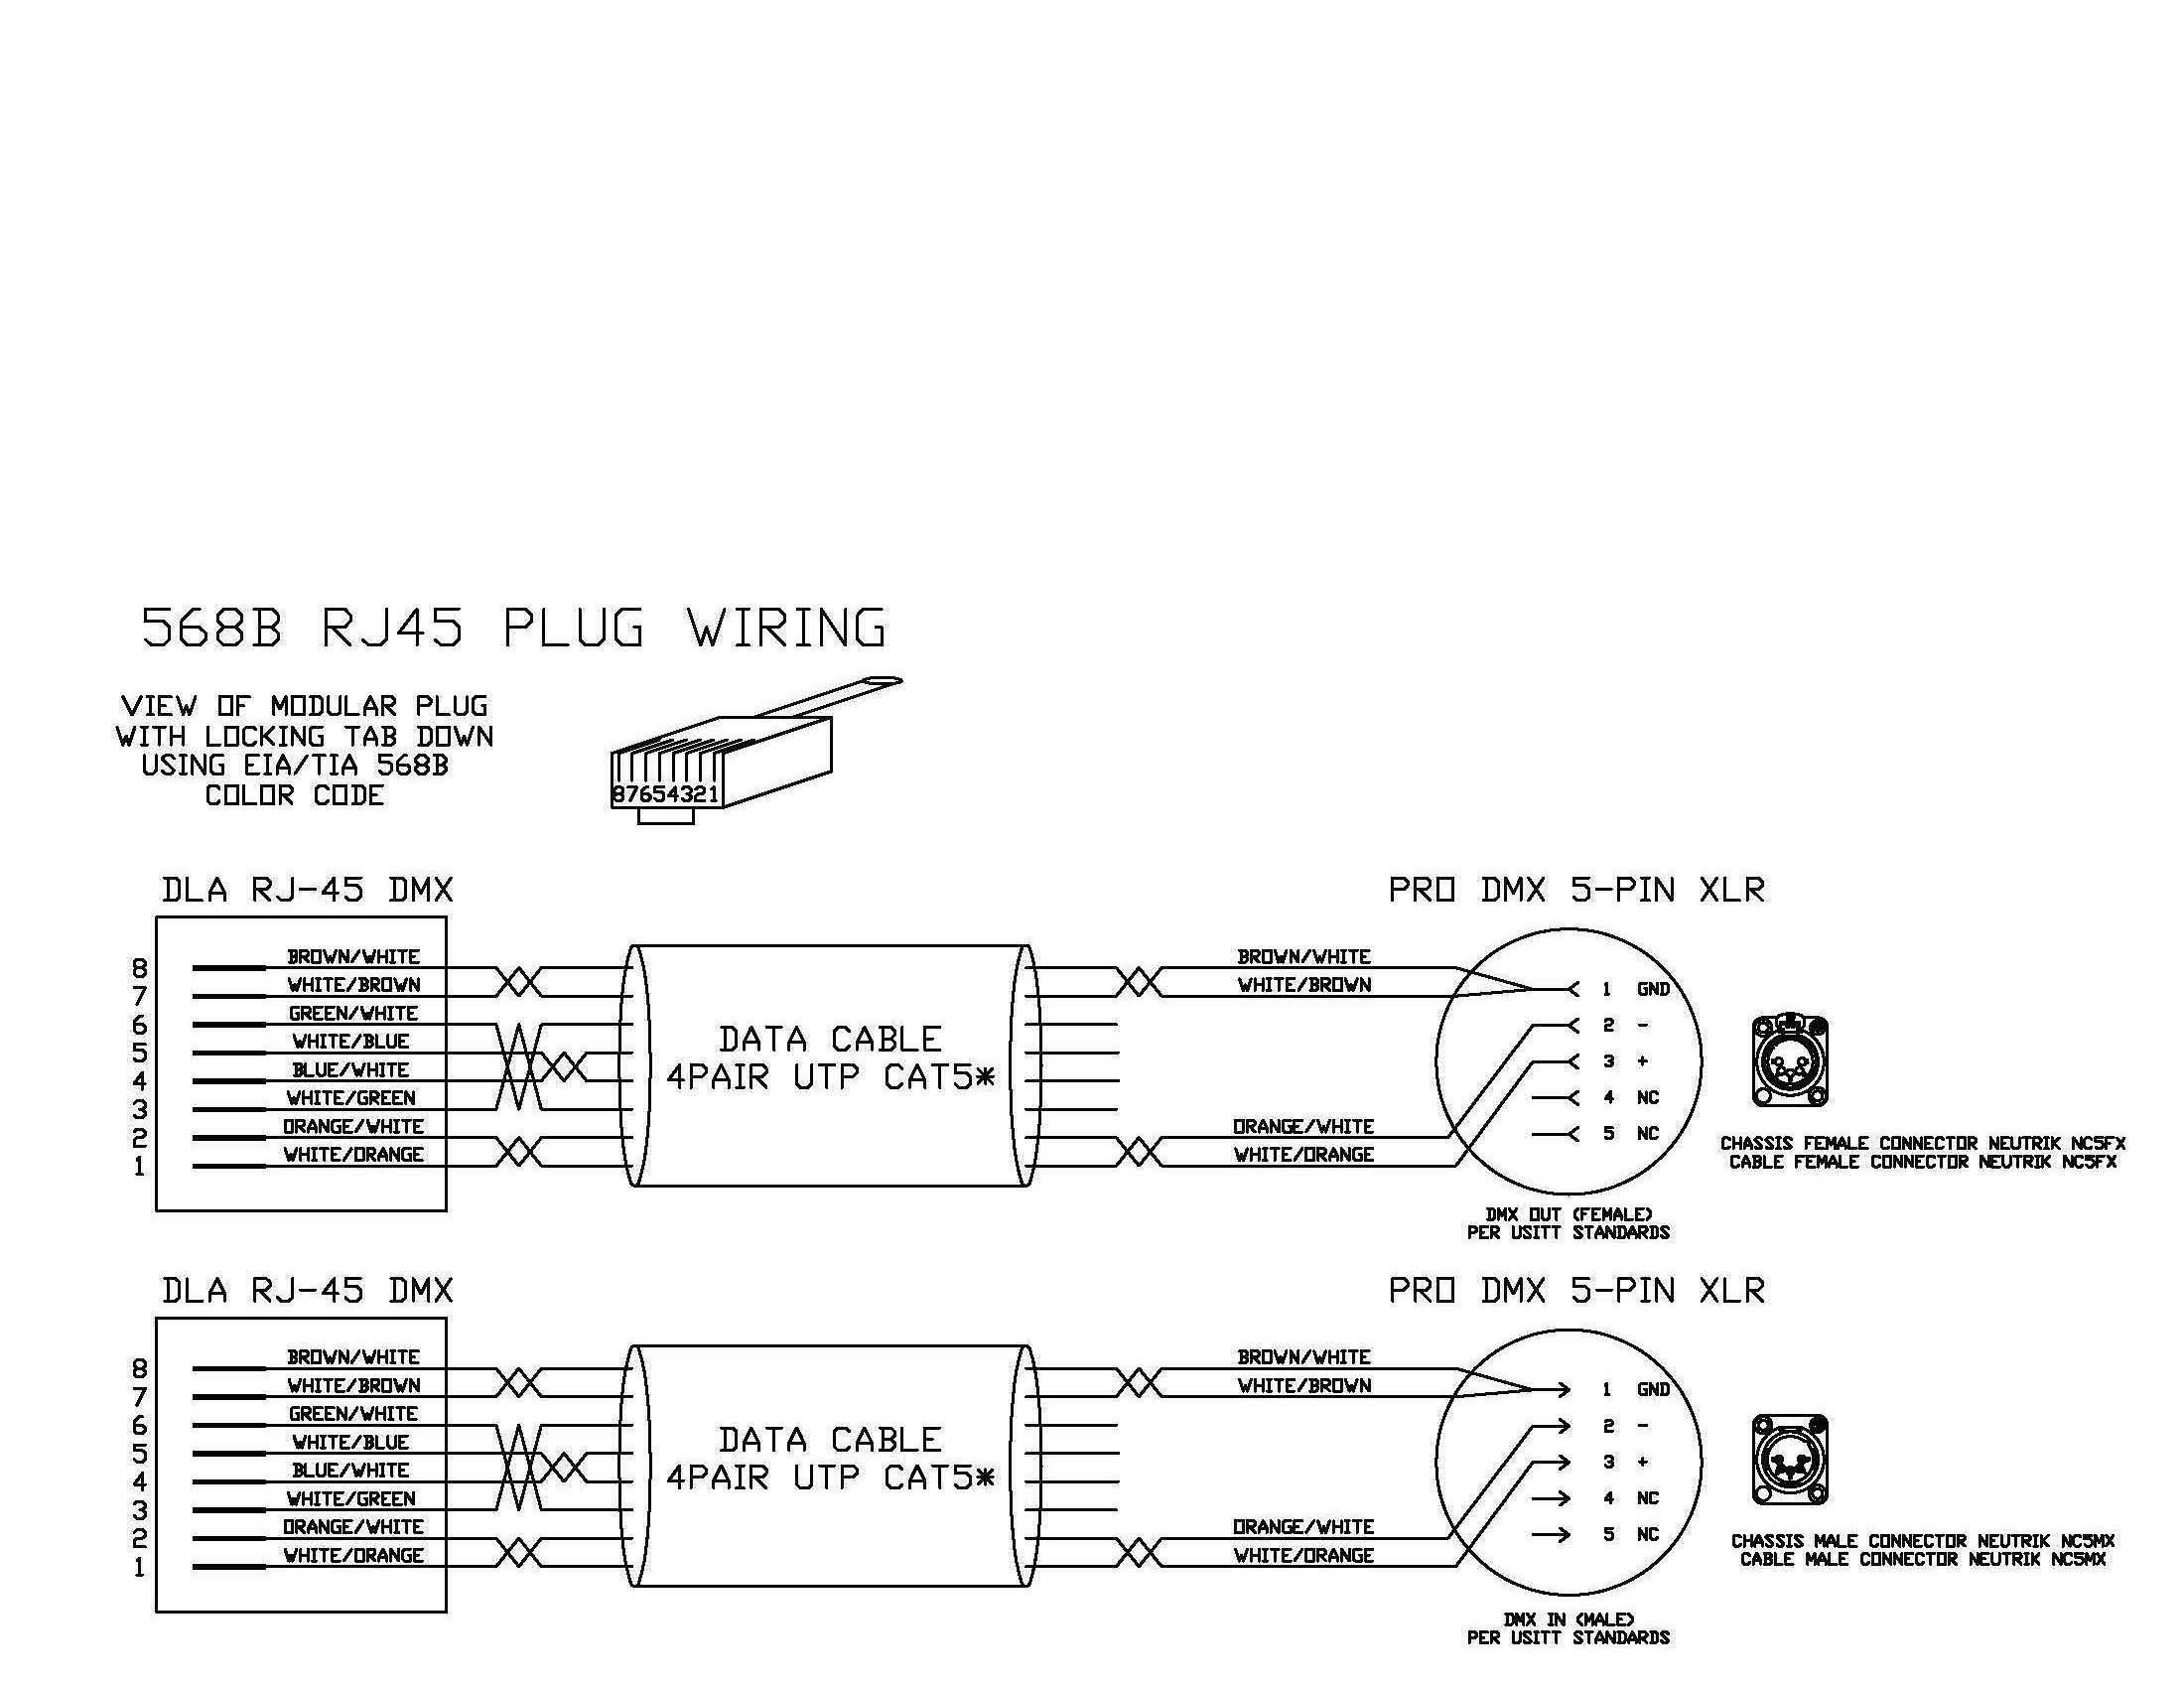 e975ddb6a839e630c21b81db05ca4fa6 xlr to rj45 wiring diagram xlr electrical wiring diagrams xlr 3 pin wiring diagram at bakdesigns.co